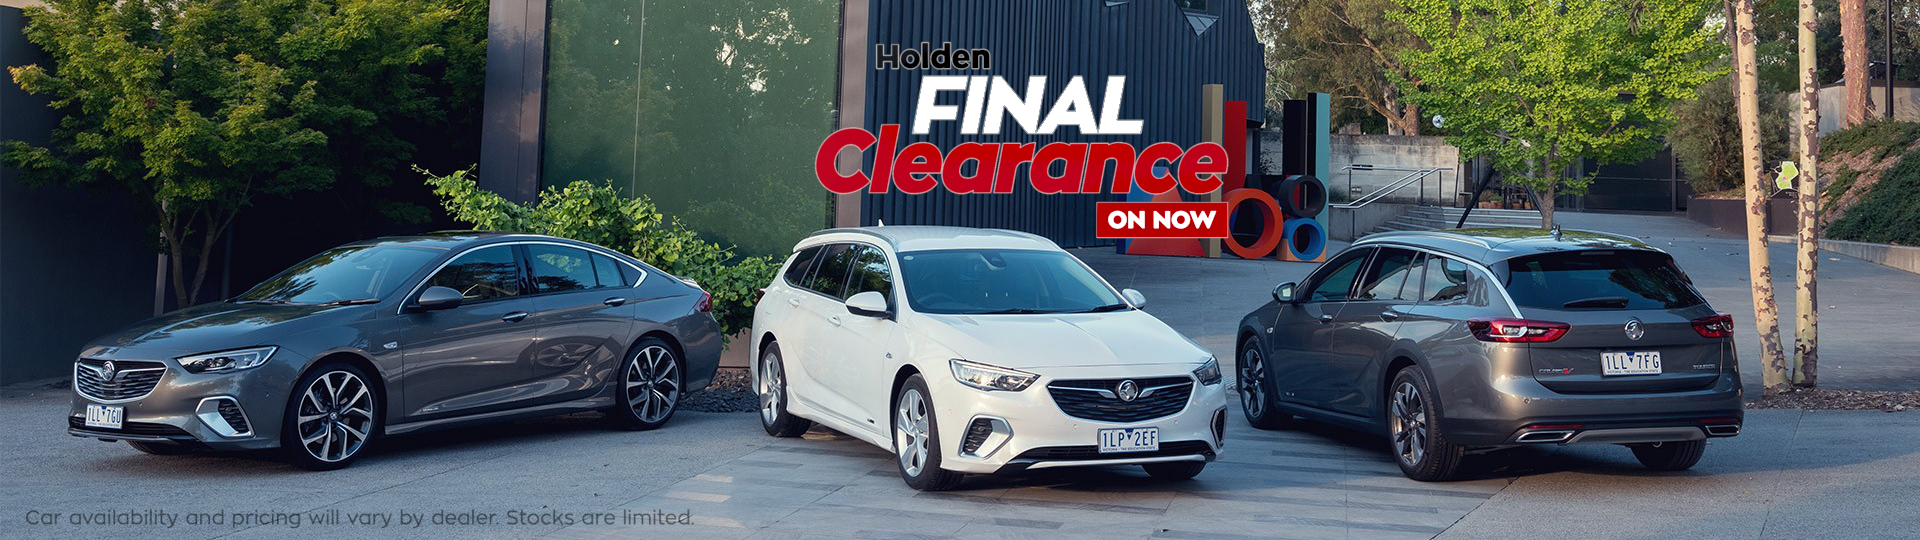 Holden Clearance Banner